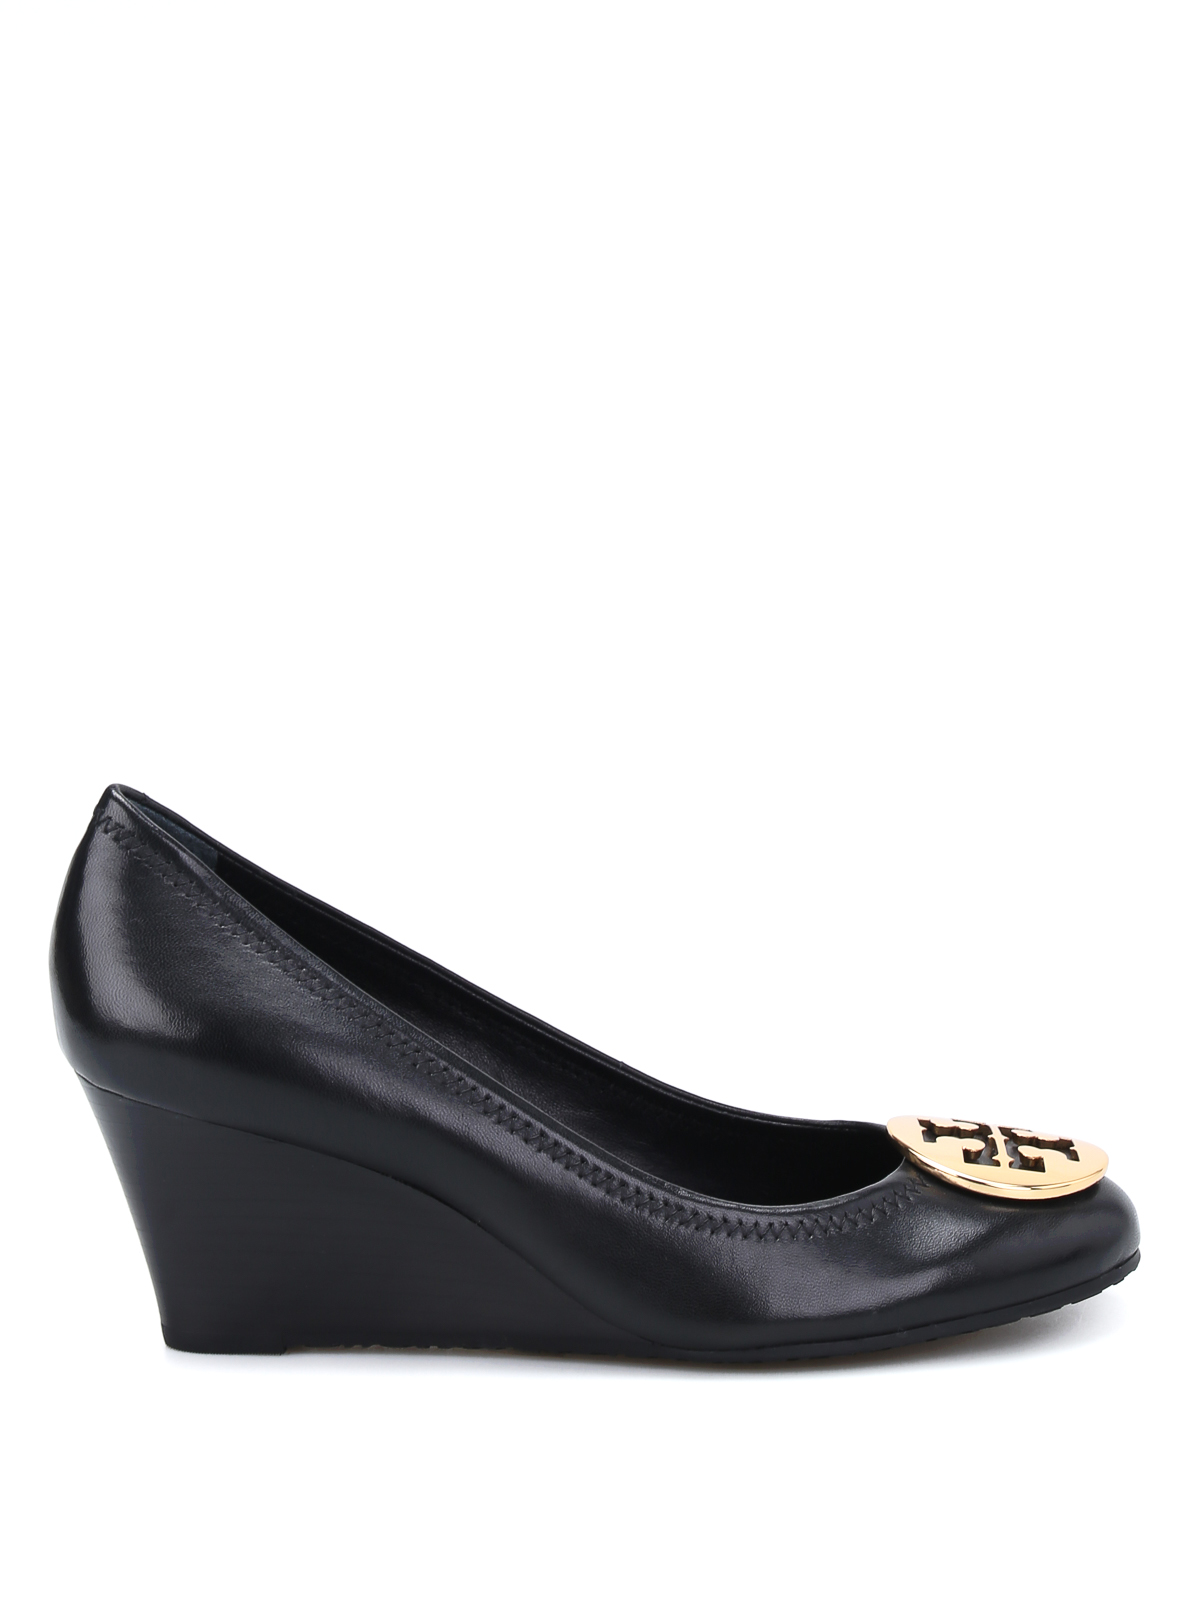 c23984ff0 Tory Burch - Sally wedge pumps - court shoes - 50008644 051